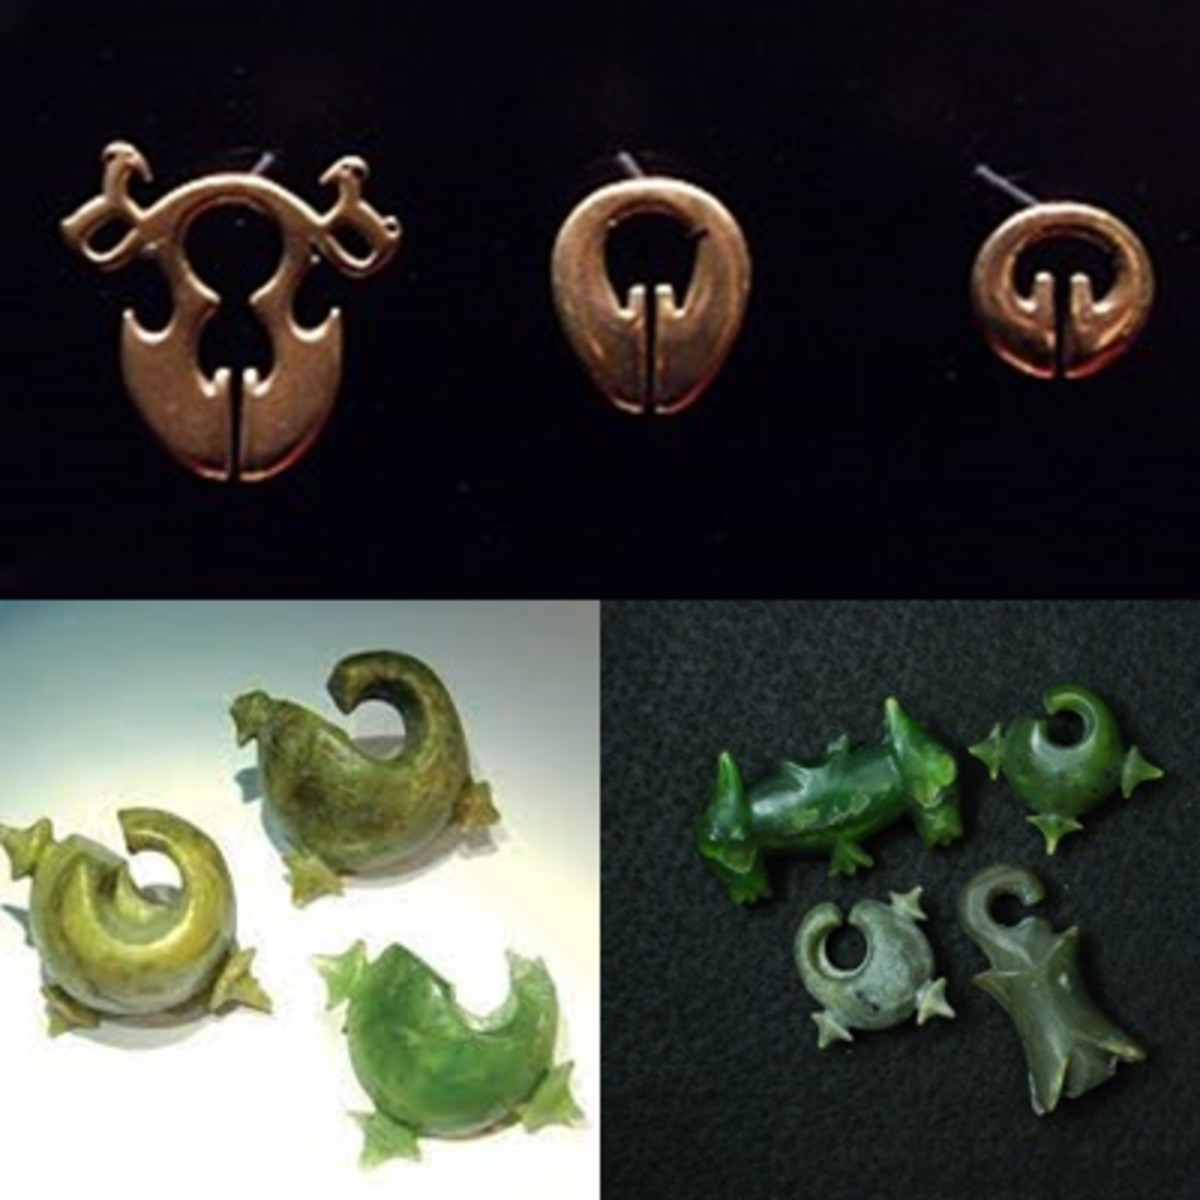 Lingling-o nephrite artifacts